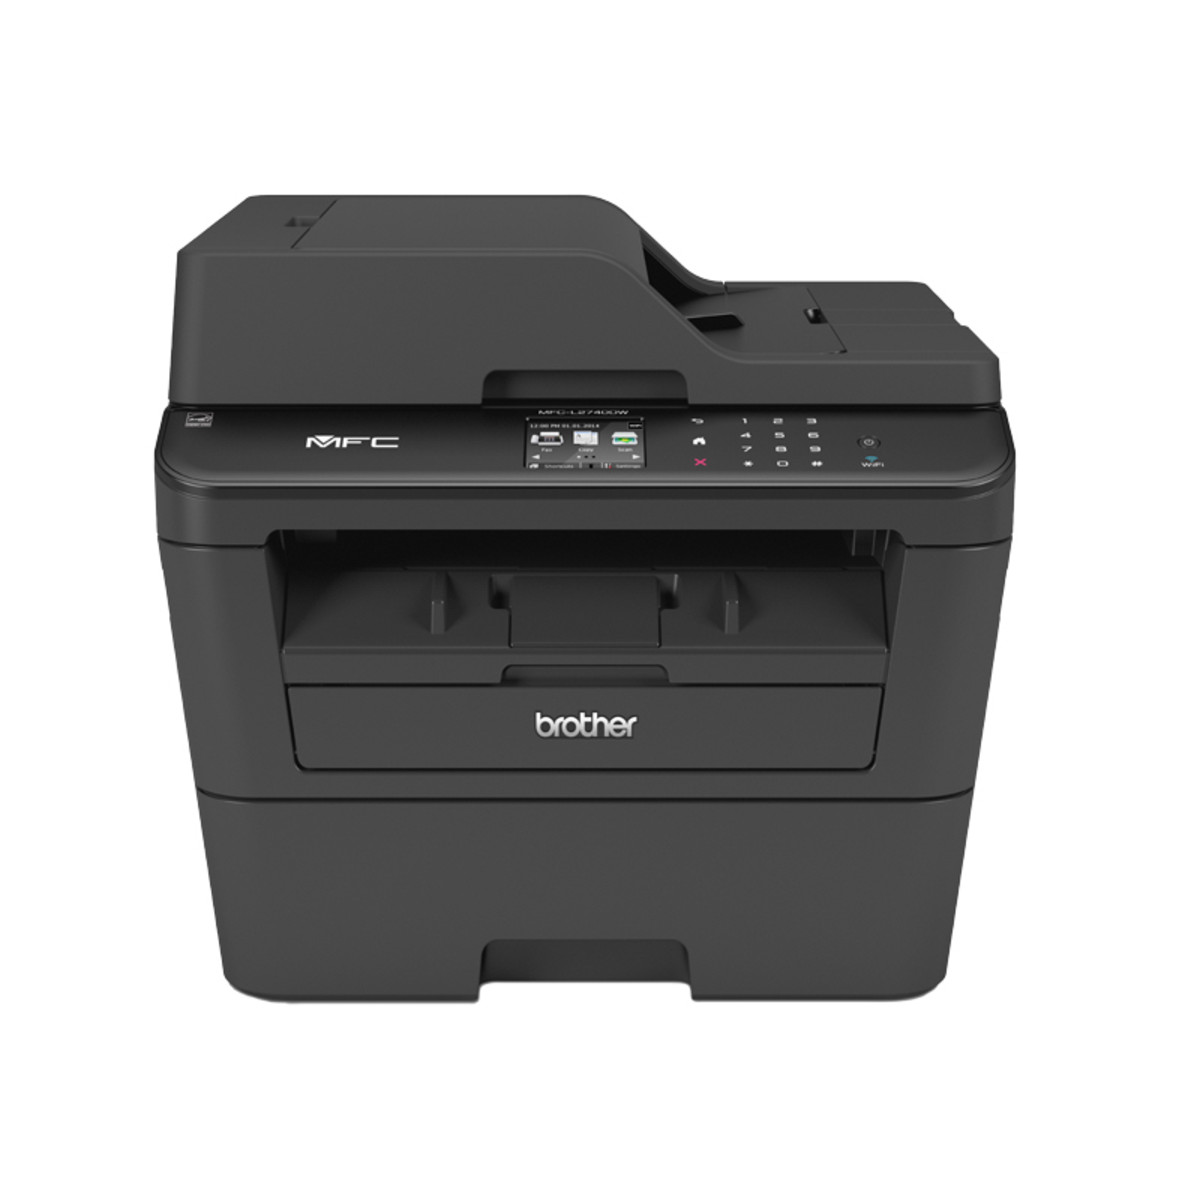 Brother MFC-L2740DW Laser Printer